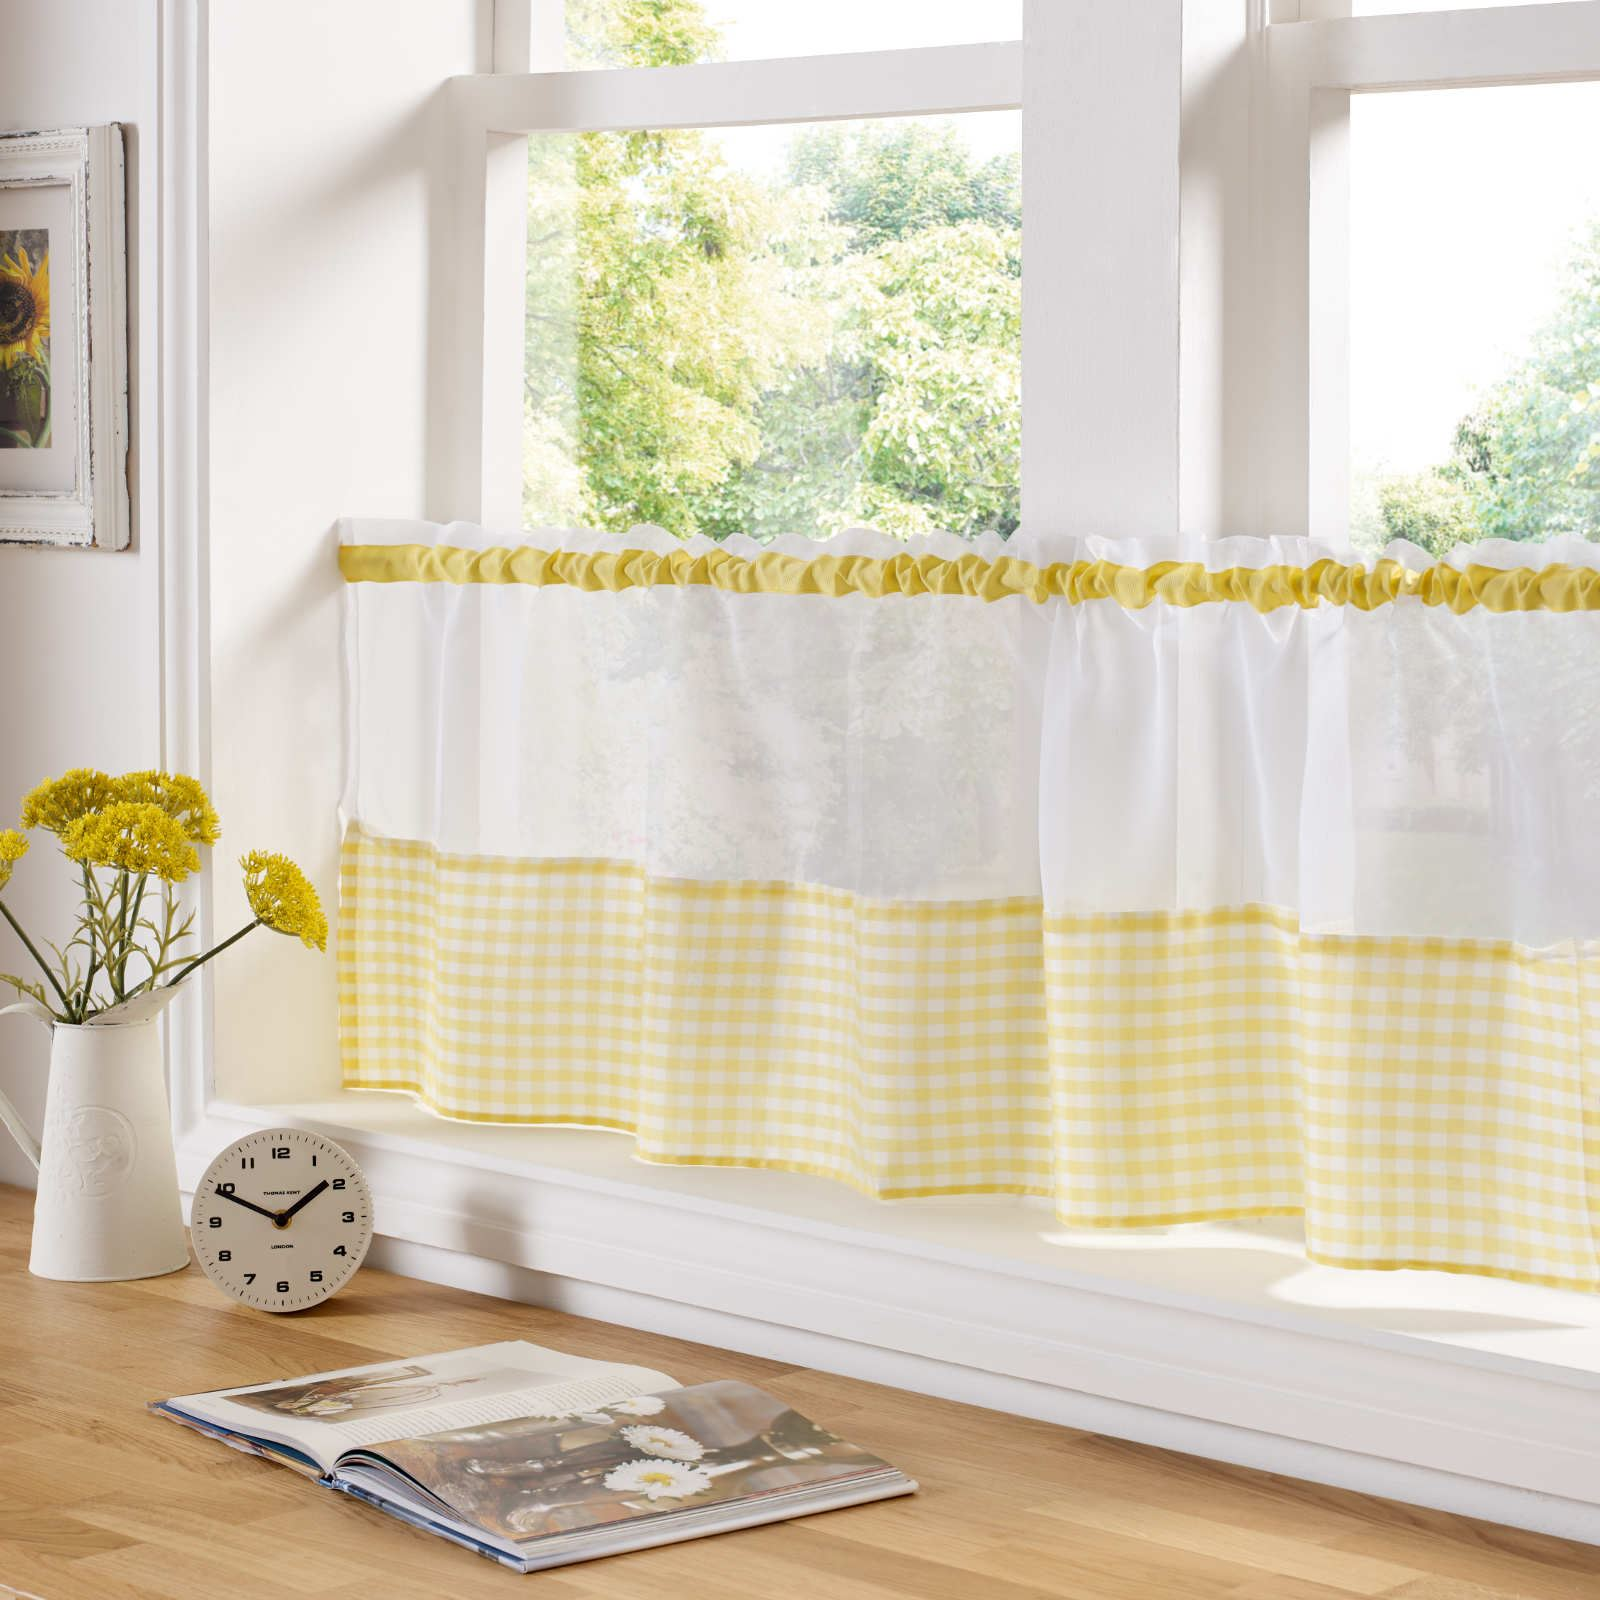 Country Dining Room Curtains: COUNTRY STYLE KITCHEN GINGHAM CURTAIN PAIR WINDOW DRAPES